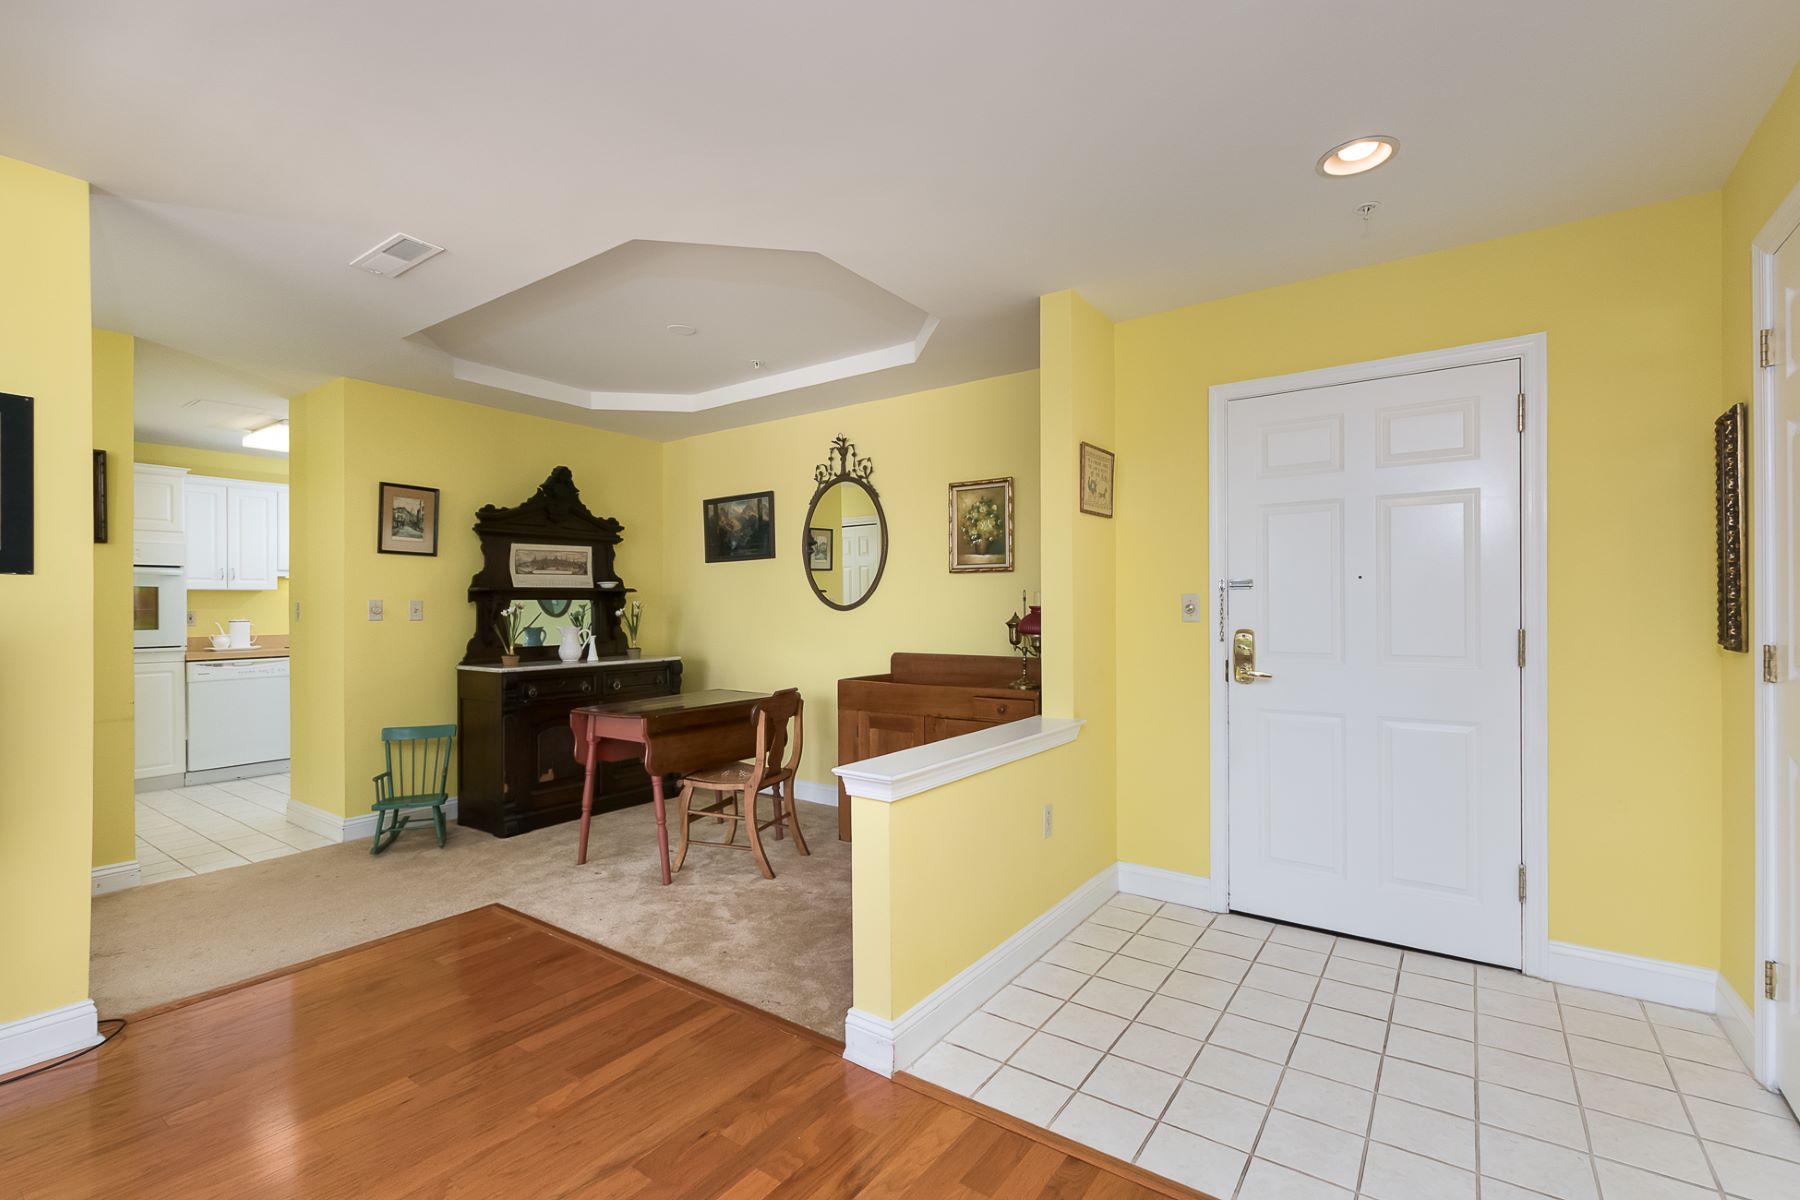 Additional photo for property listing at Natural Views & Joyful Colors Are A Delight! 2324 Windrow Drive, Princeton, New Jersey 08540 United States